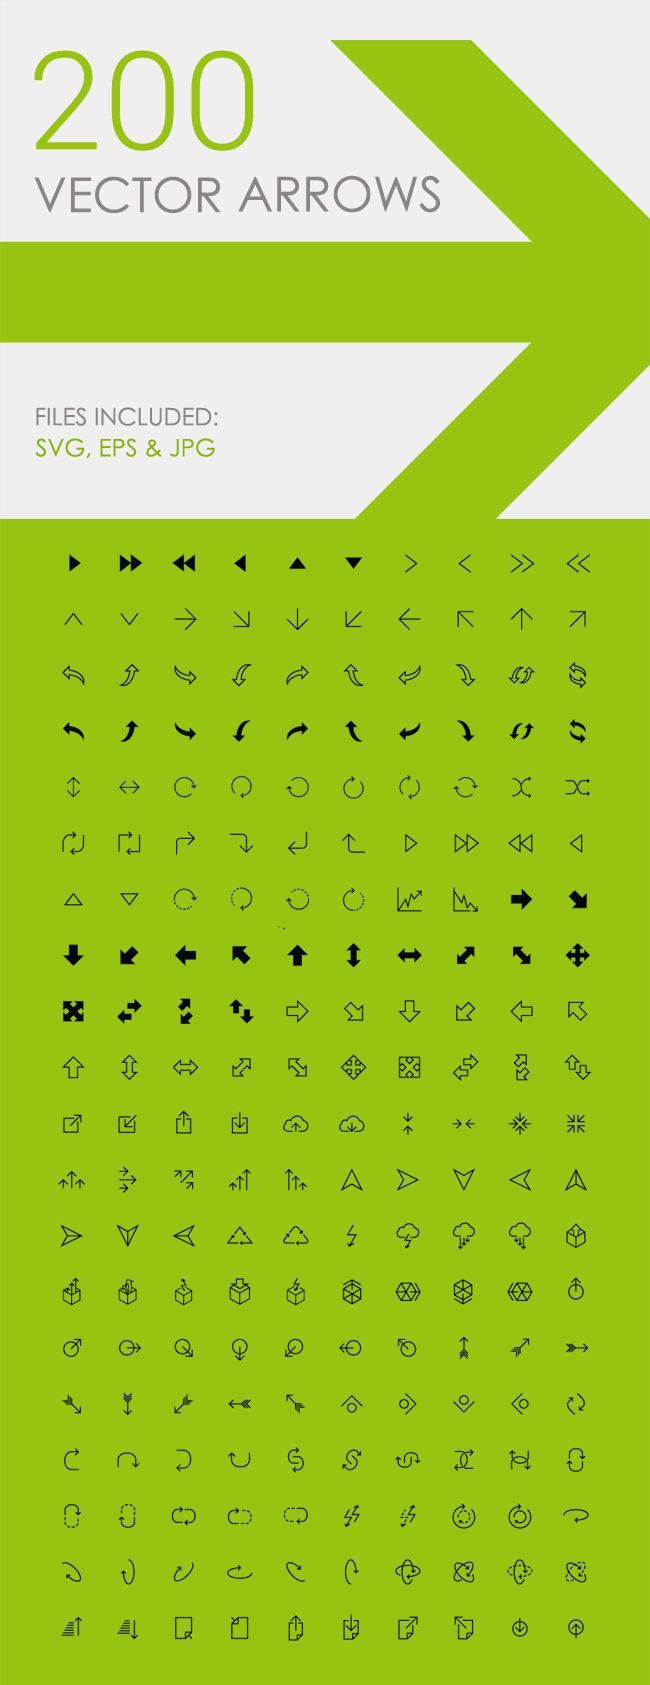 Pin By Miri Nistor On Free Icons Web Design Freebies Design Freebie Web Design